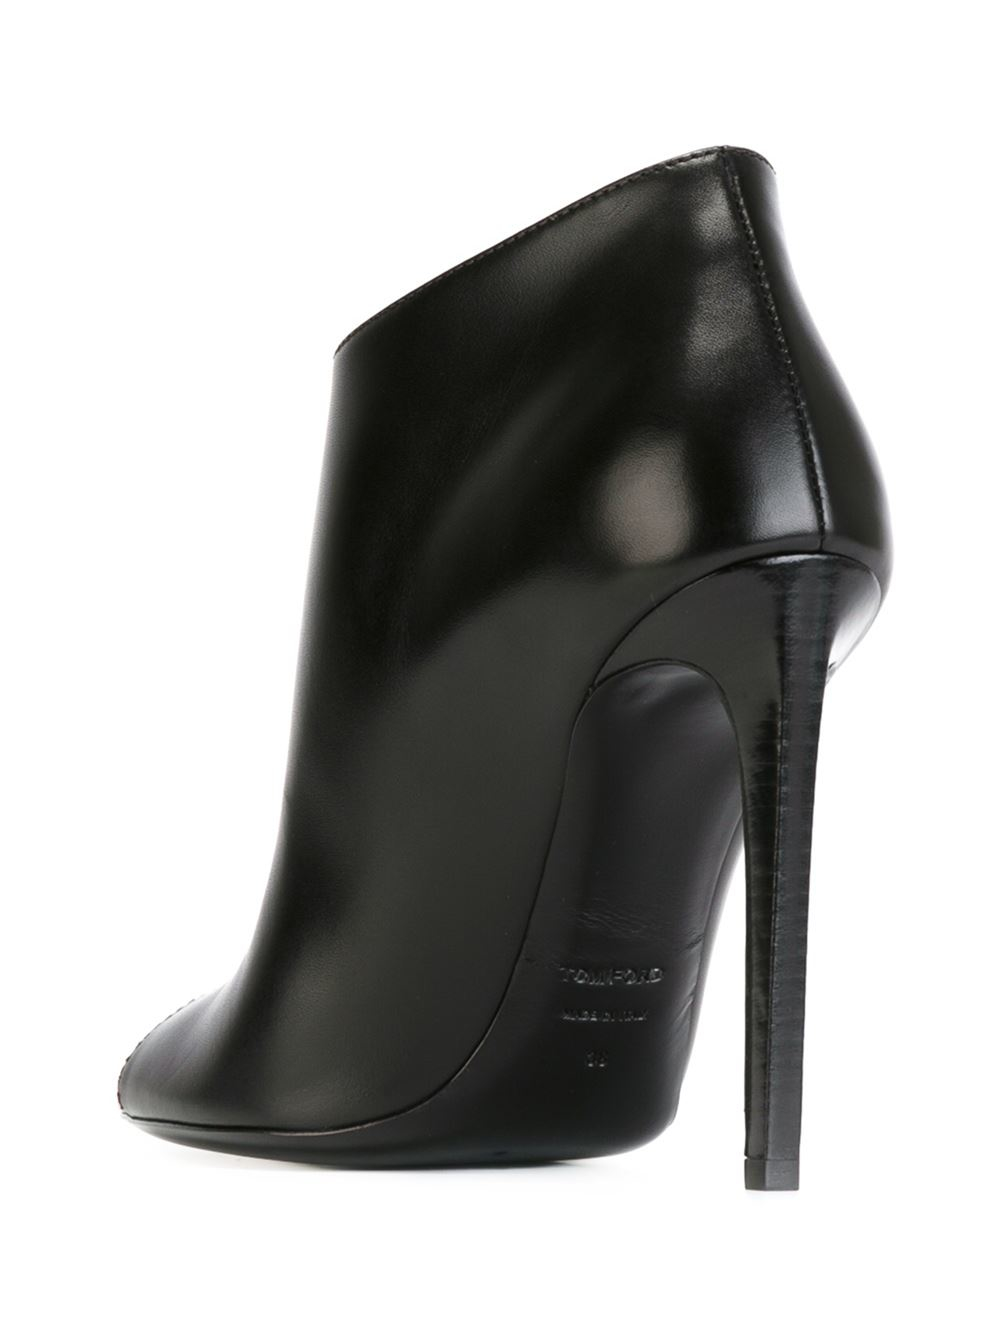 reliable online Tom Ford Leather Embellished Ankle Boots sale cheap lyCRXNh2On